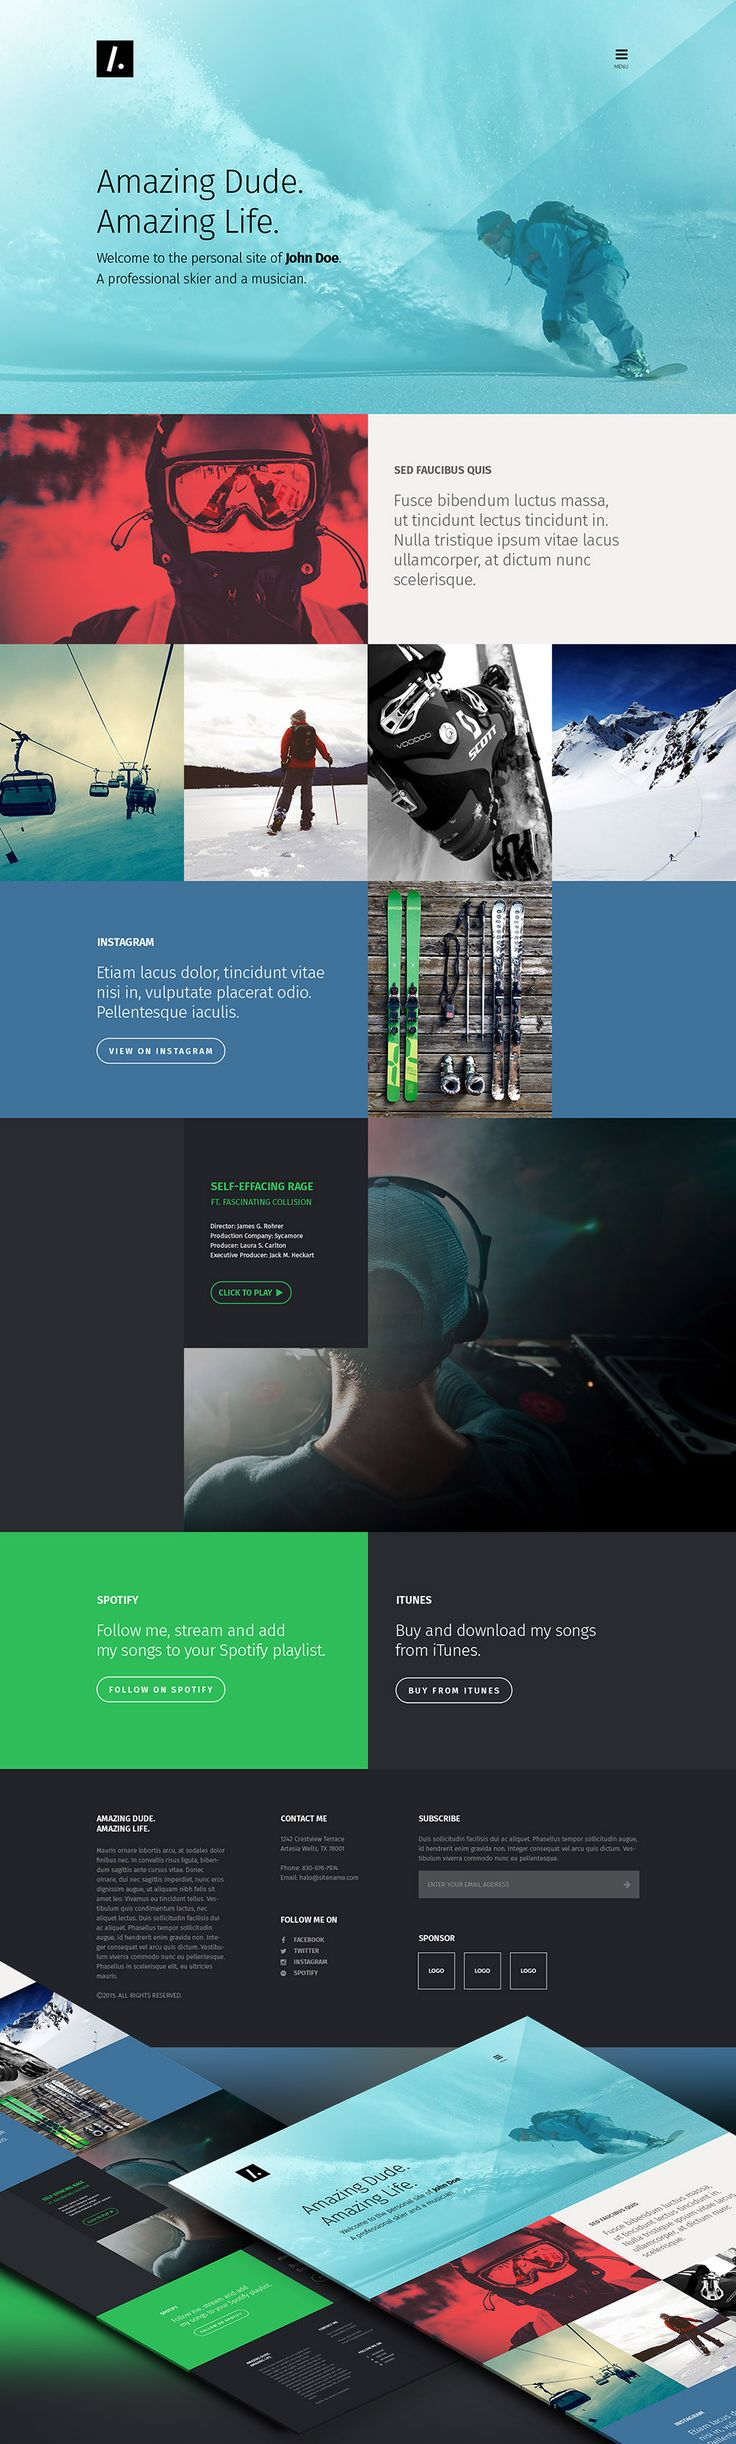 Best 25+ One page website ideas on Pinterest | Web layout, Un ...